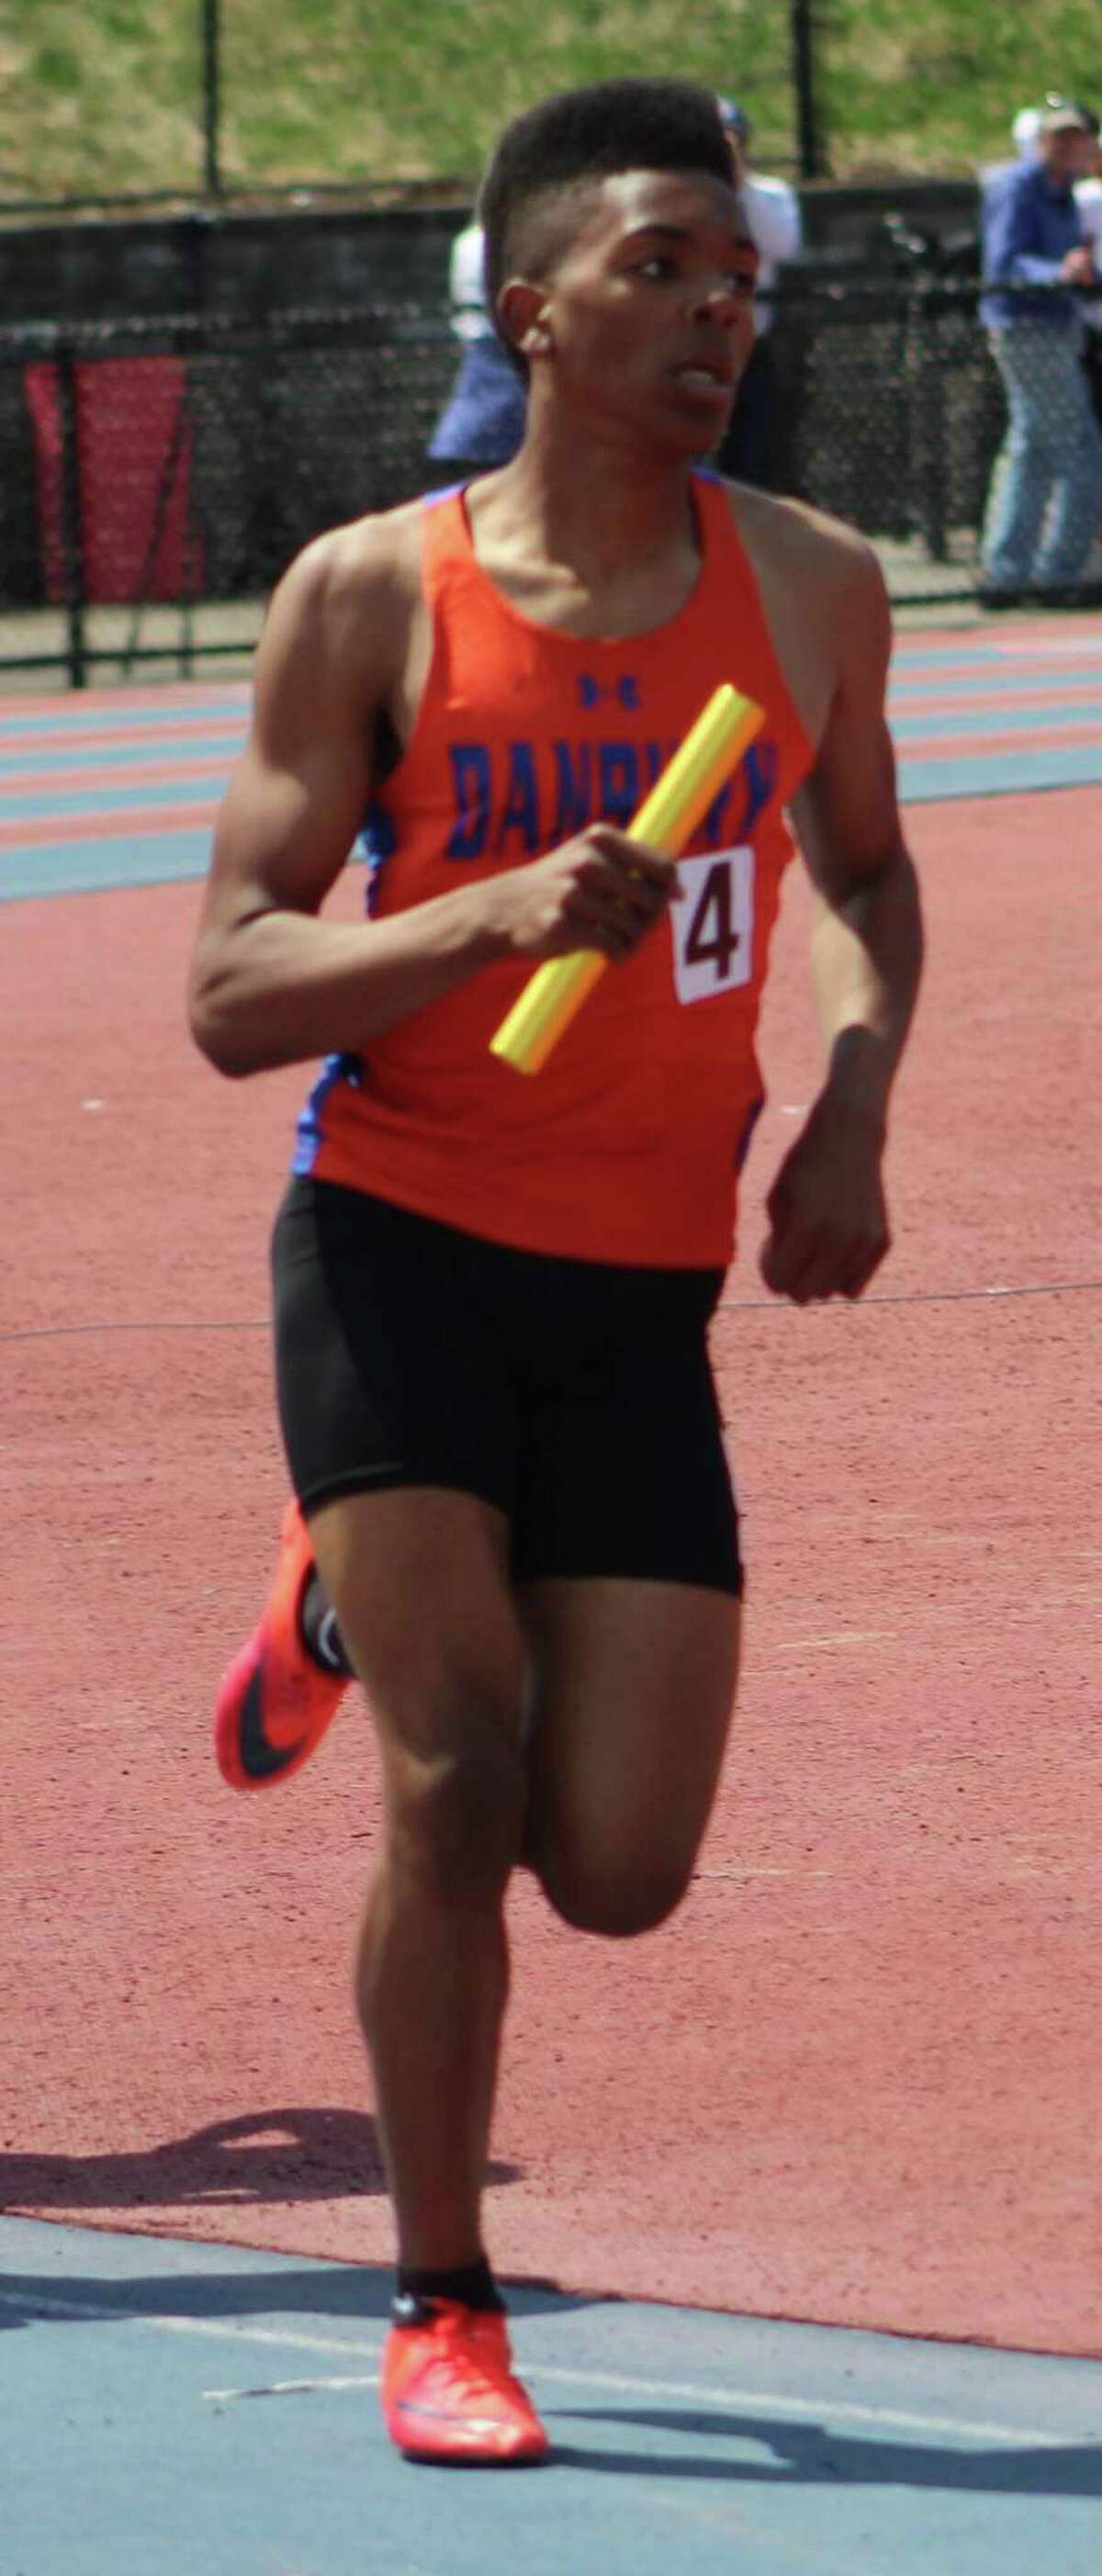 Danbury's Glenroy Ford competes in the boys 4x800 relay at the O'Grady Relays at Danbury High School April 28, 2018.